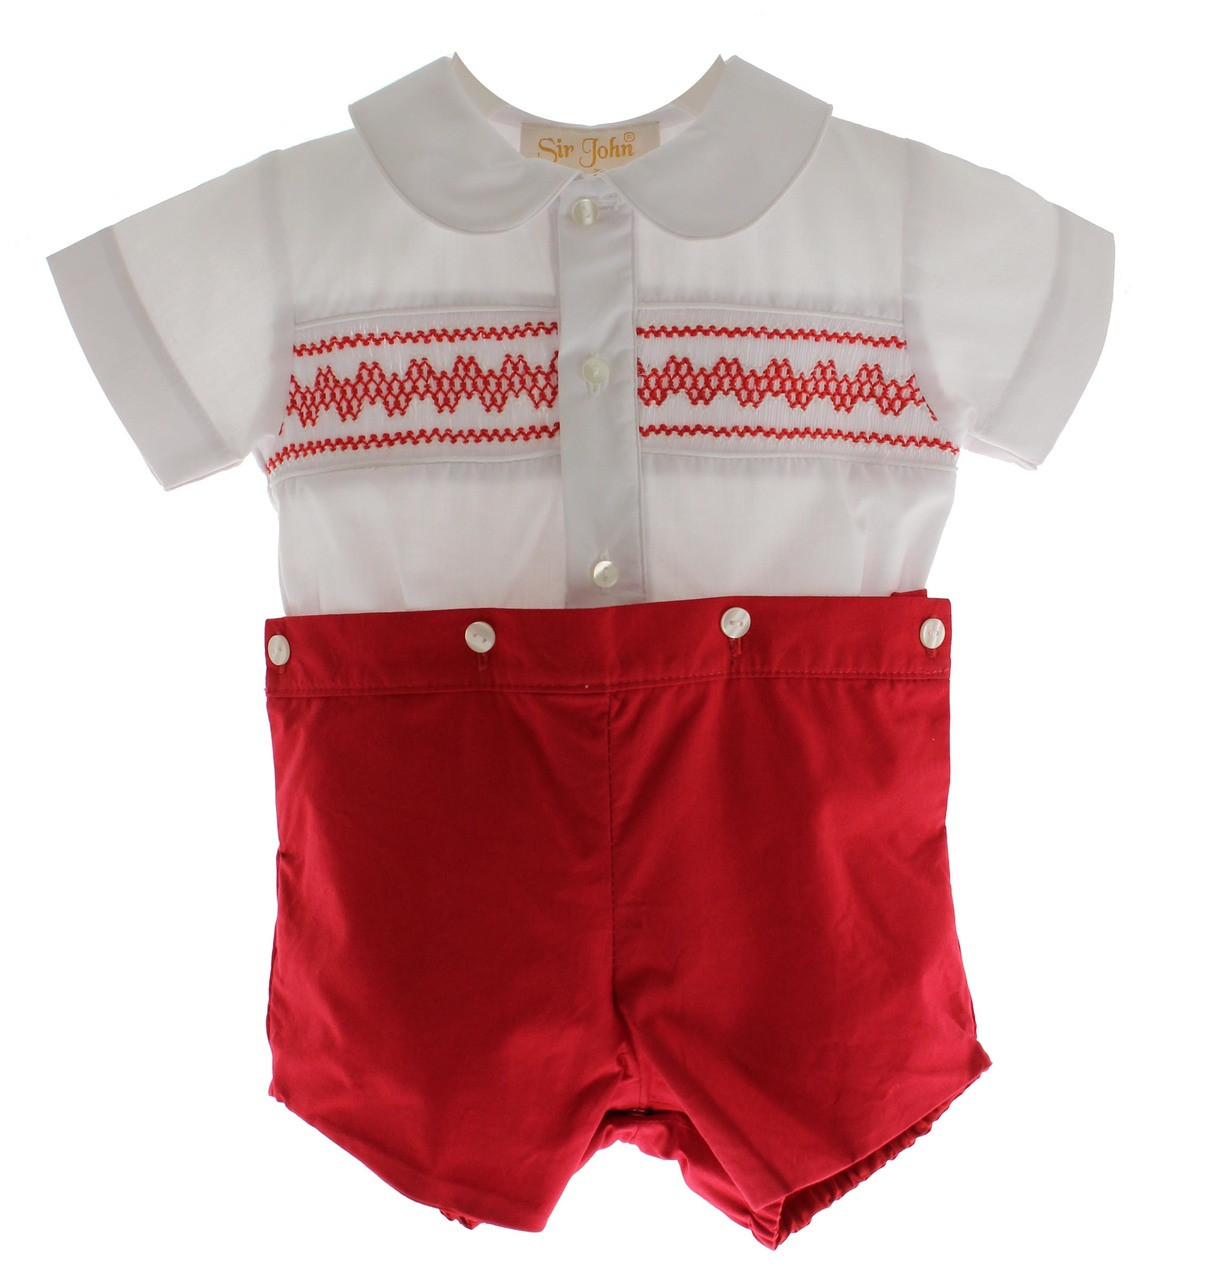 9737c4dab Boys Red White Smocked Bobbie Suit Christmas Short Set Hiccups · Baby Boy  Smocked Christmas Outfits